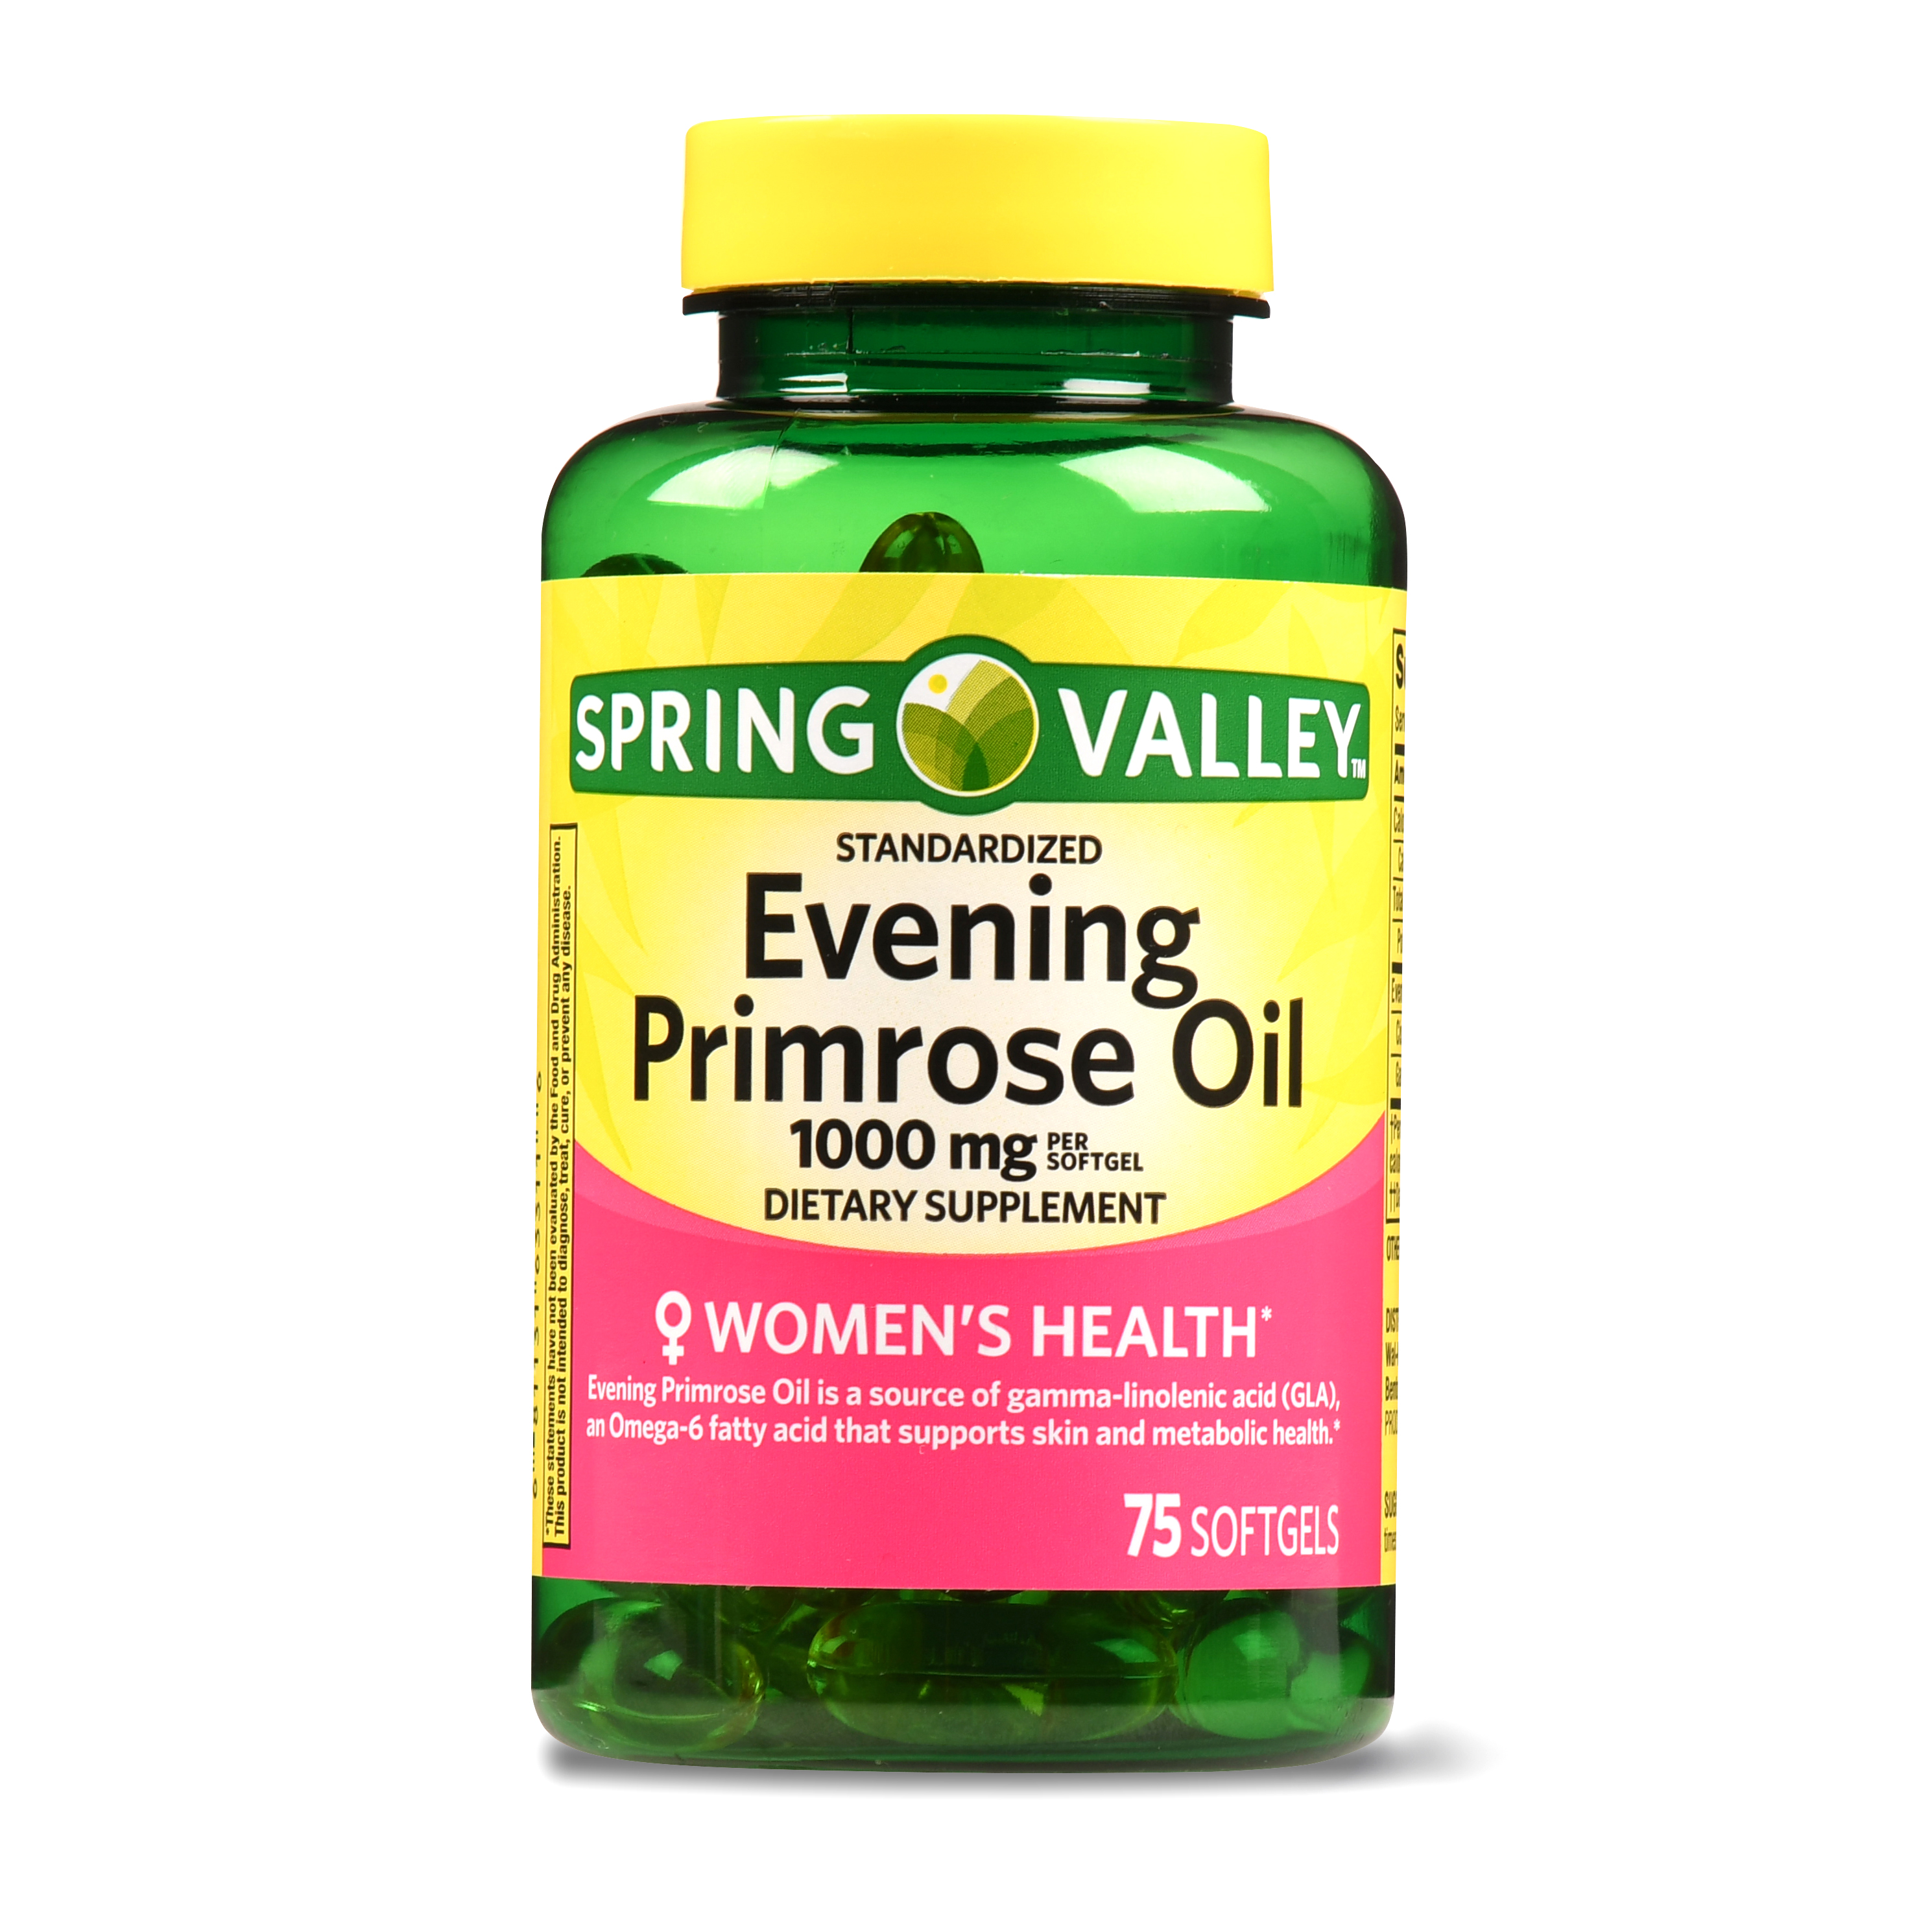 Spring Valley Women's Health Evening Primrose Oil Softgels, 1000 mg, 75 Ct